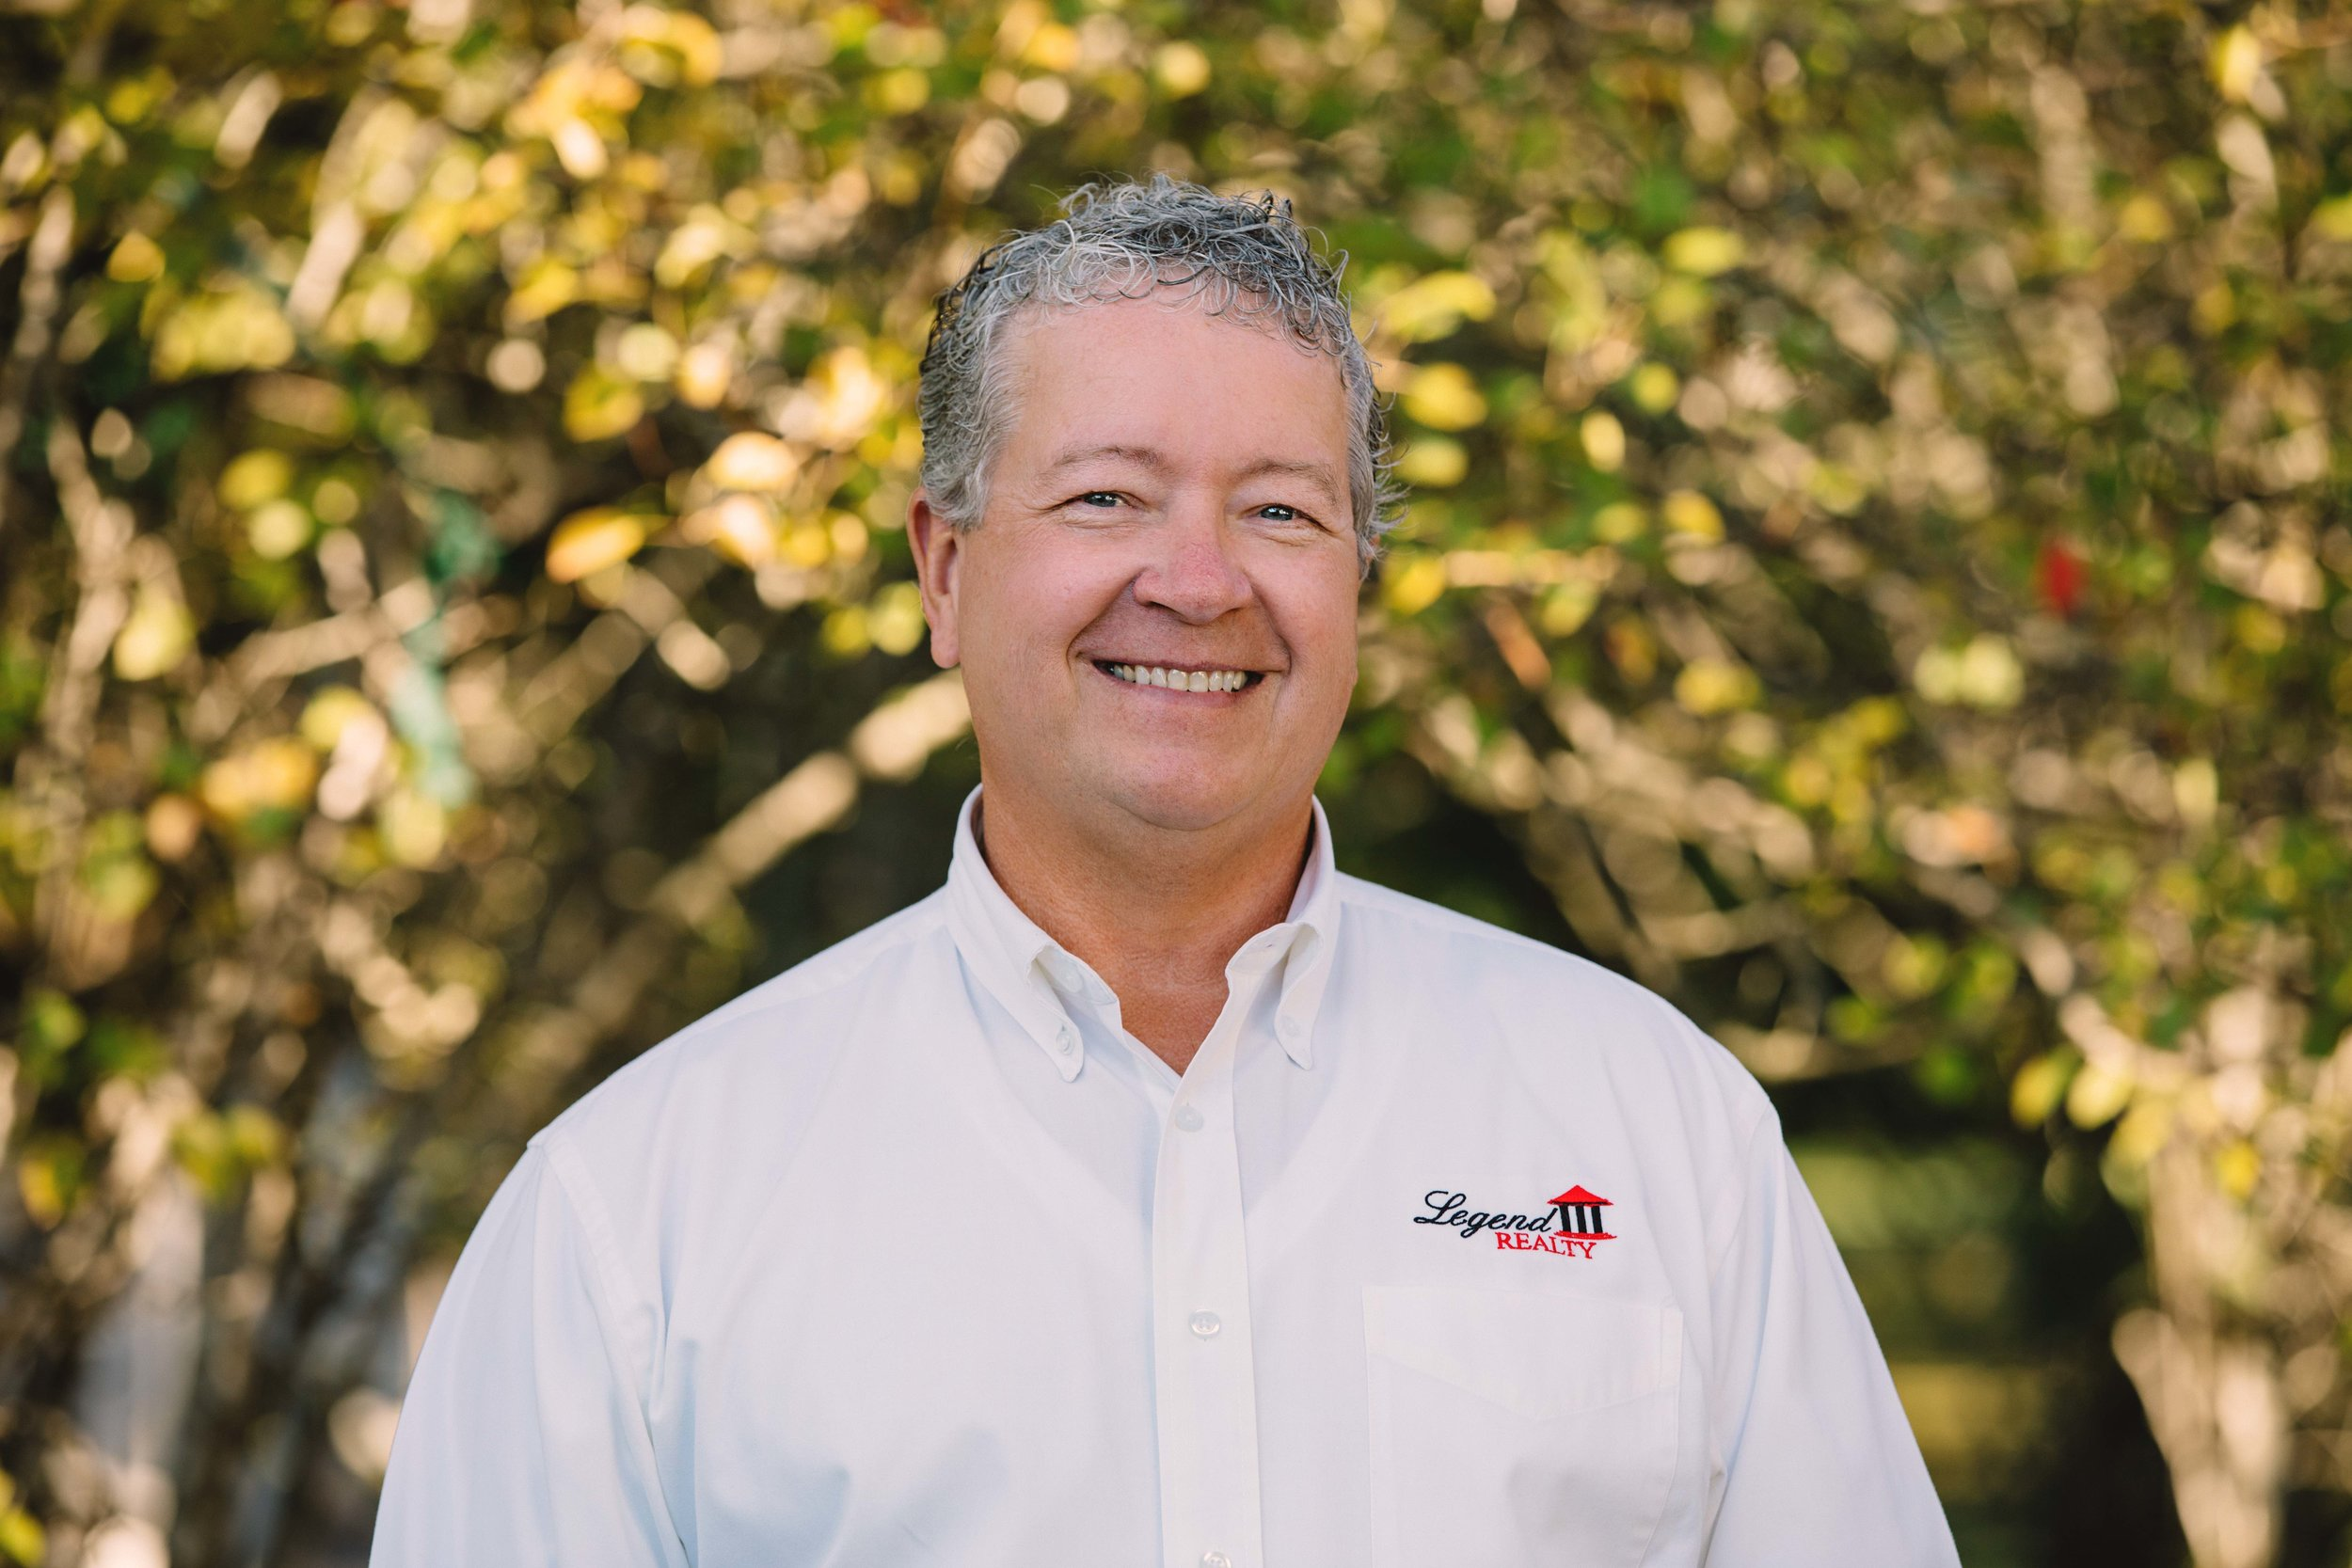 Freddy Killen - Legend RealtyI cover all of Northeast Alabama from the Tennessee & Georgia state lines, including Huntsville to the west and Guntersville to the south. I work with Buyers & Sellers, let me list your home or let's make